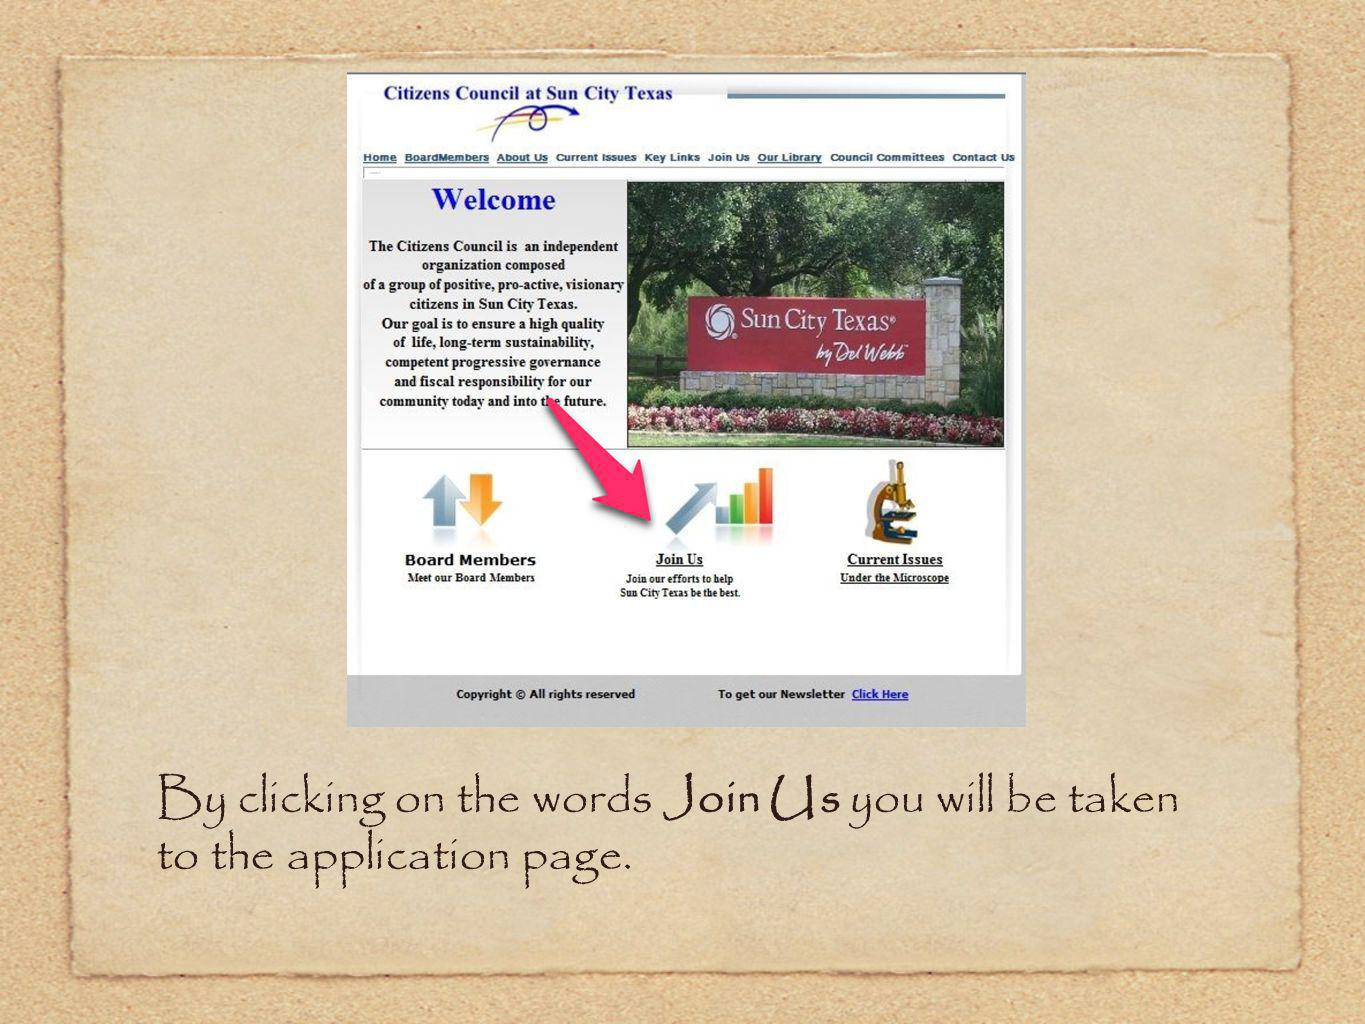 By clicking on the words Join Us you will be taken to the application page.